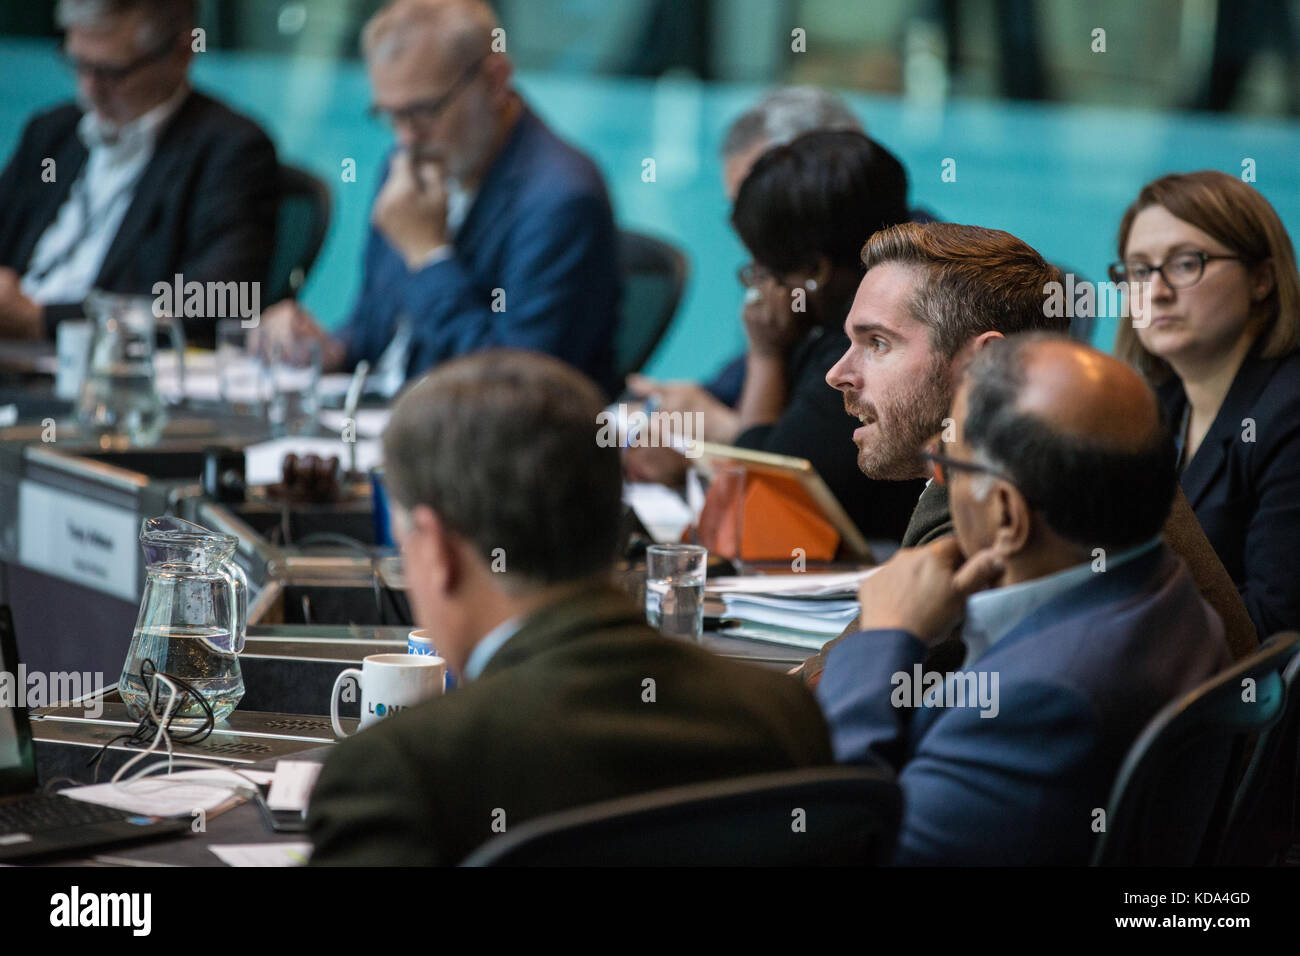 London, UK. 12th Oct, 2017. Tom Copley, Labour London Assembly Member, puts a question regarding micro flats to Stock Photo